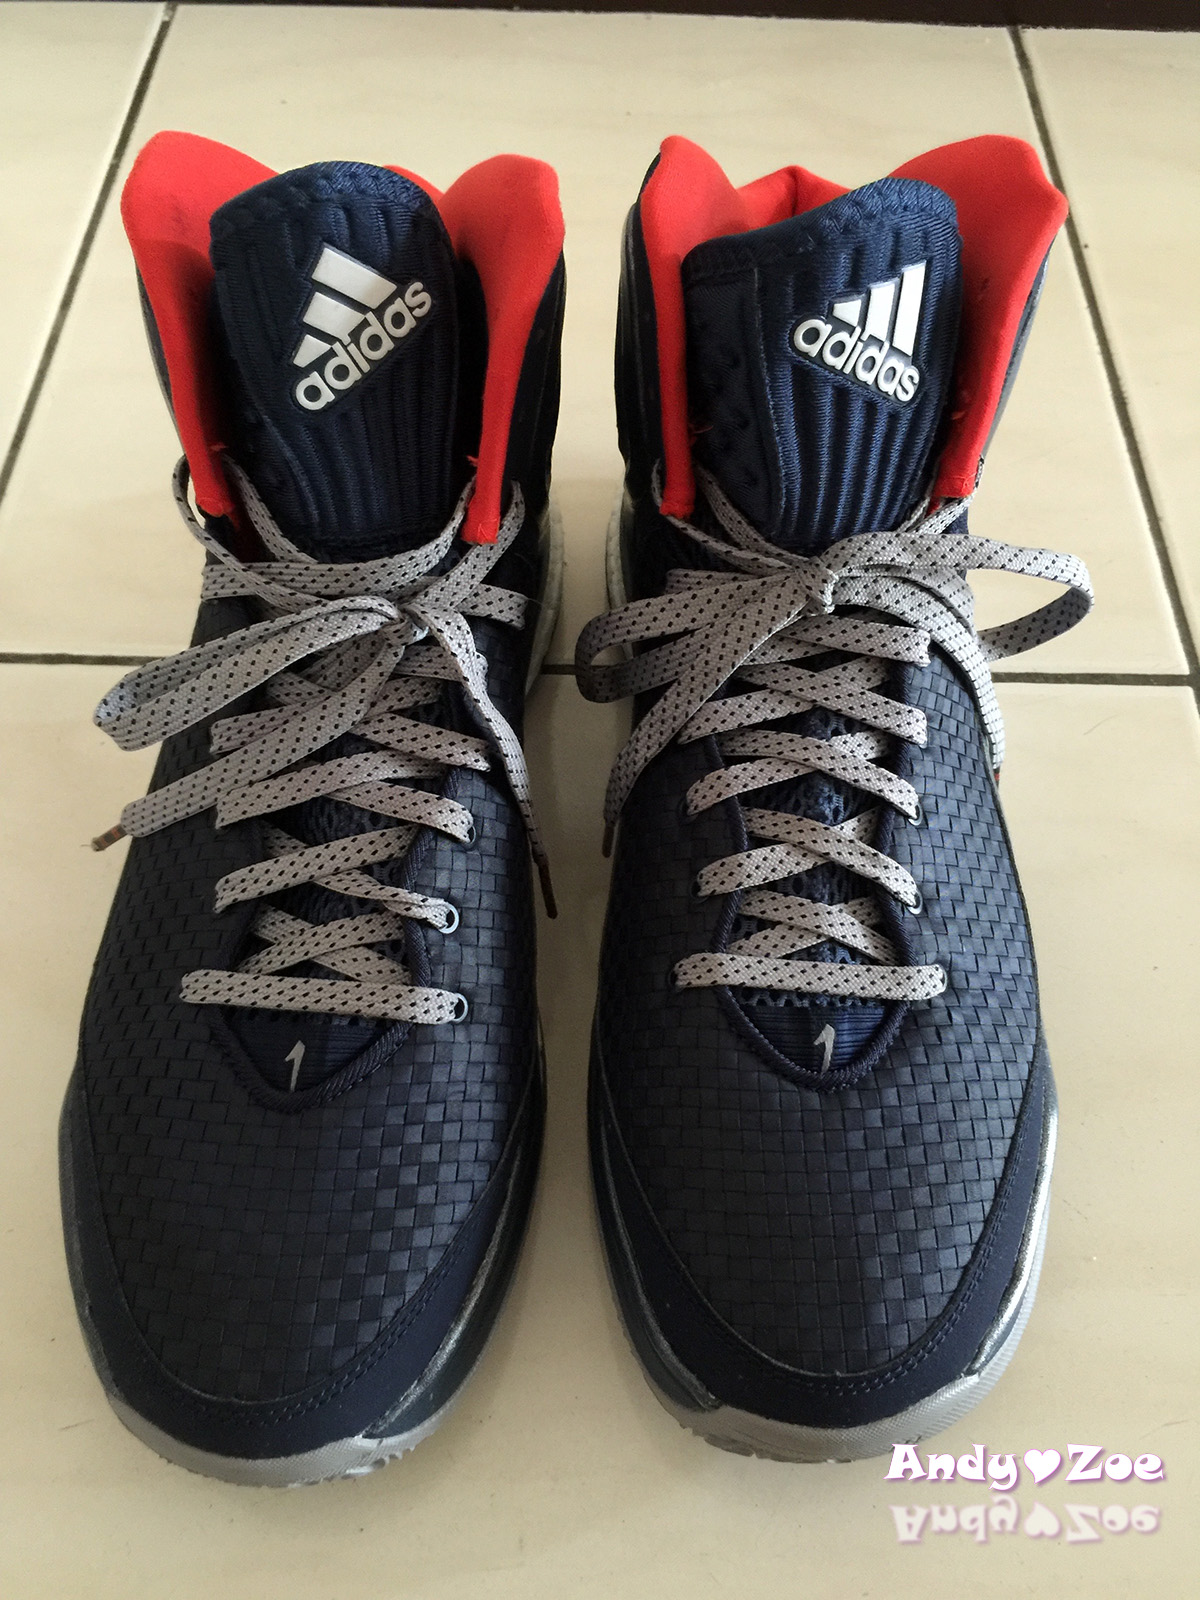 separation shoes 17c29 745f7 Zoe與Andy的生活筆記  adidas Derrick Rose 5 Boost  Woven Blues  愛迪達藍色編織籃球鞋開箱文